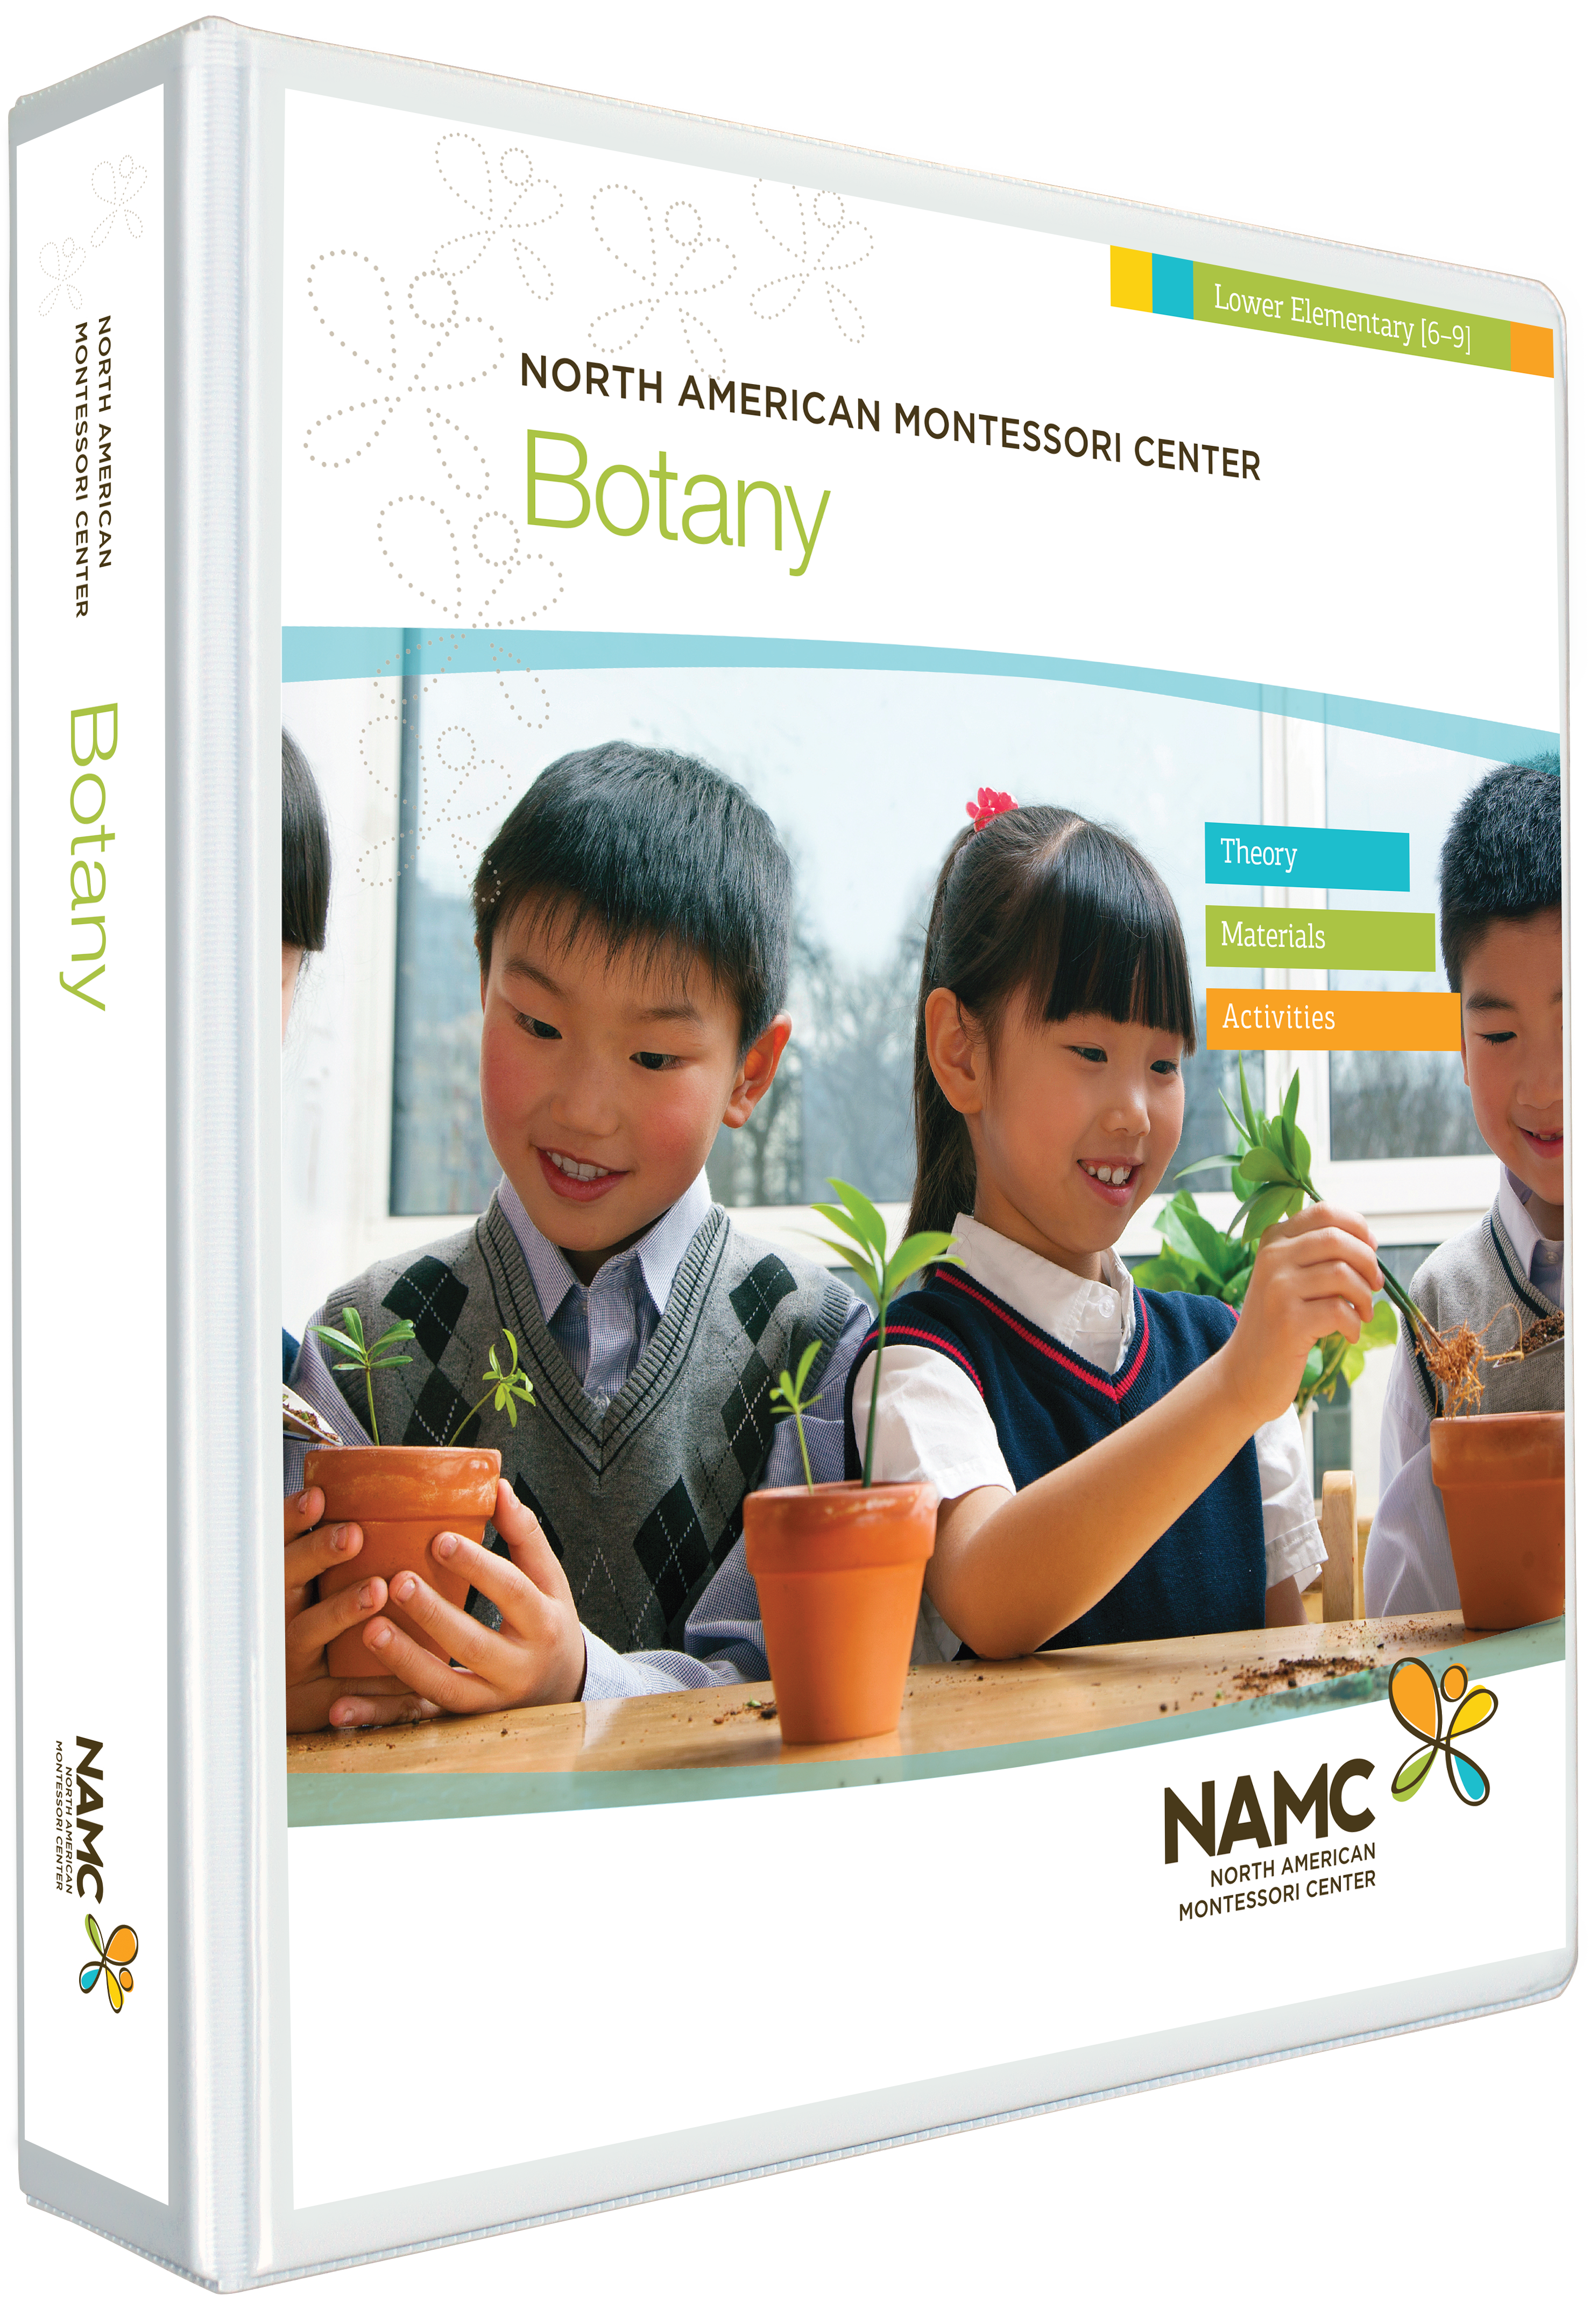 NAMC's Lower Elementary Montessori Botany Manual